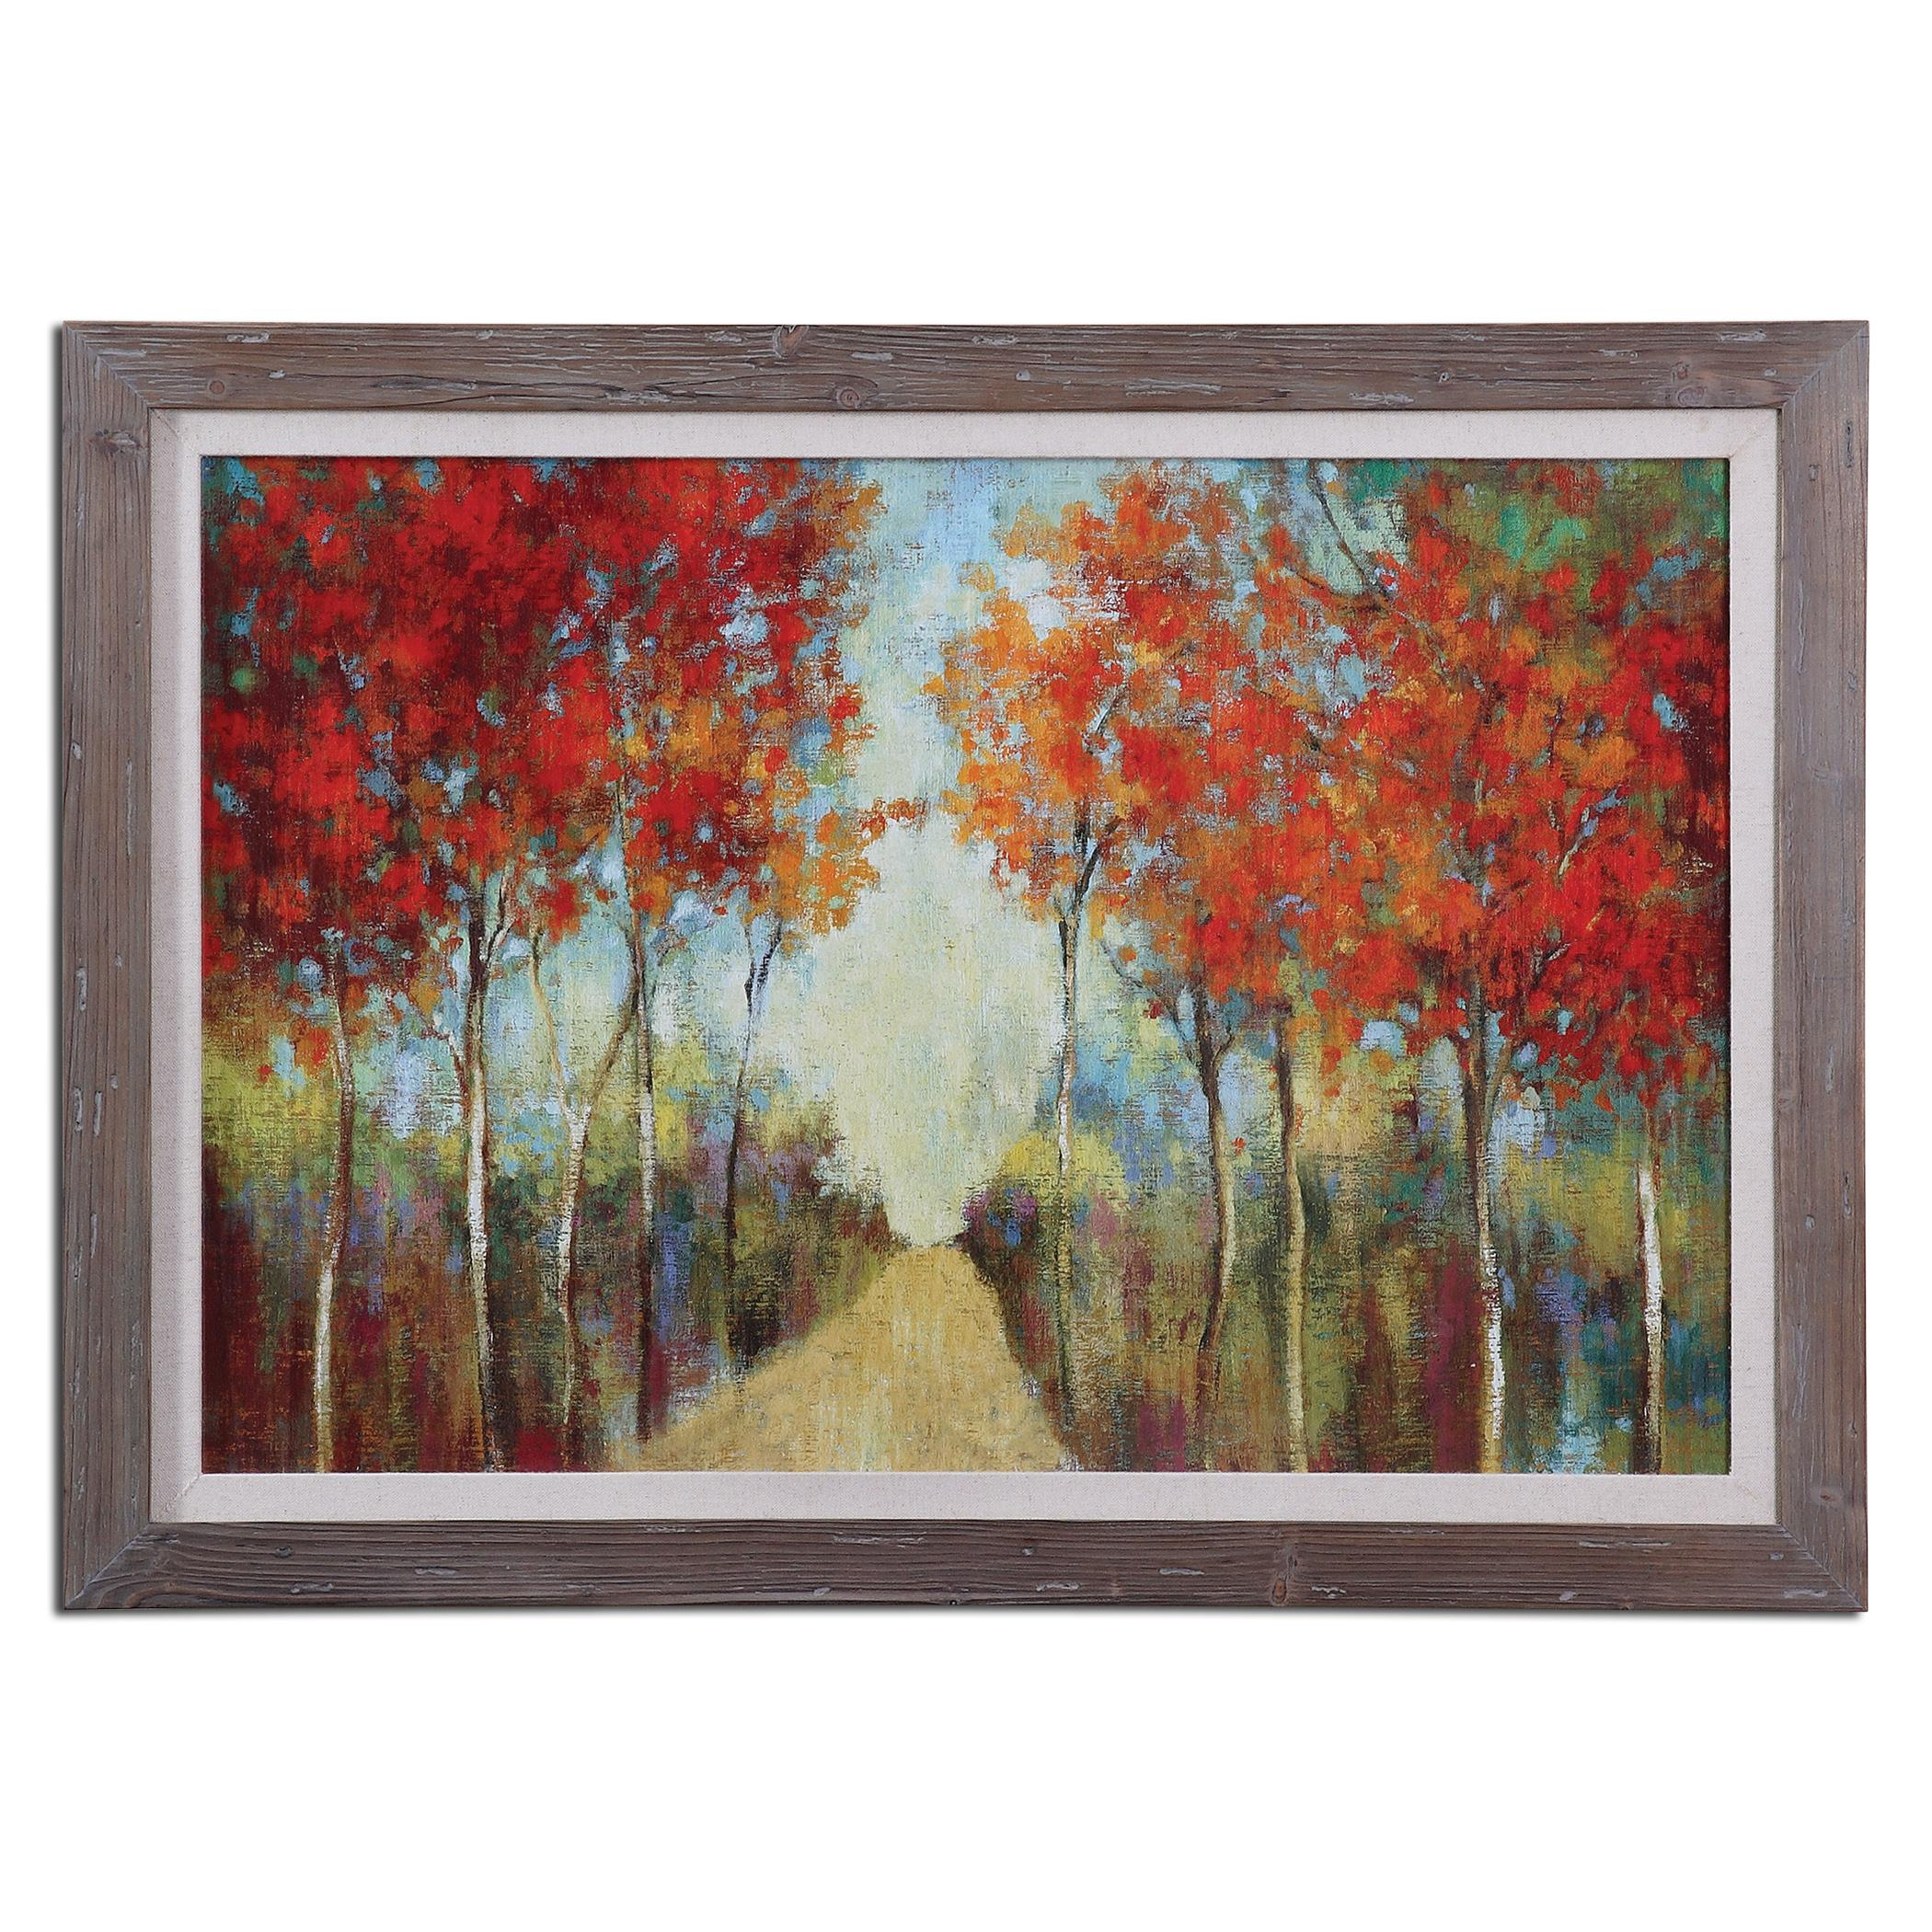 Uttermost Art Nature's Walk Landscape Art - Item Number: 41525